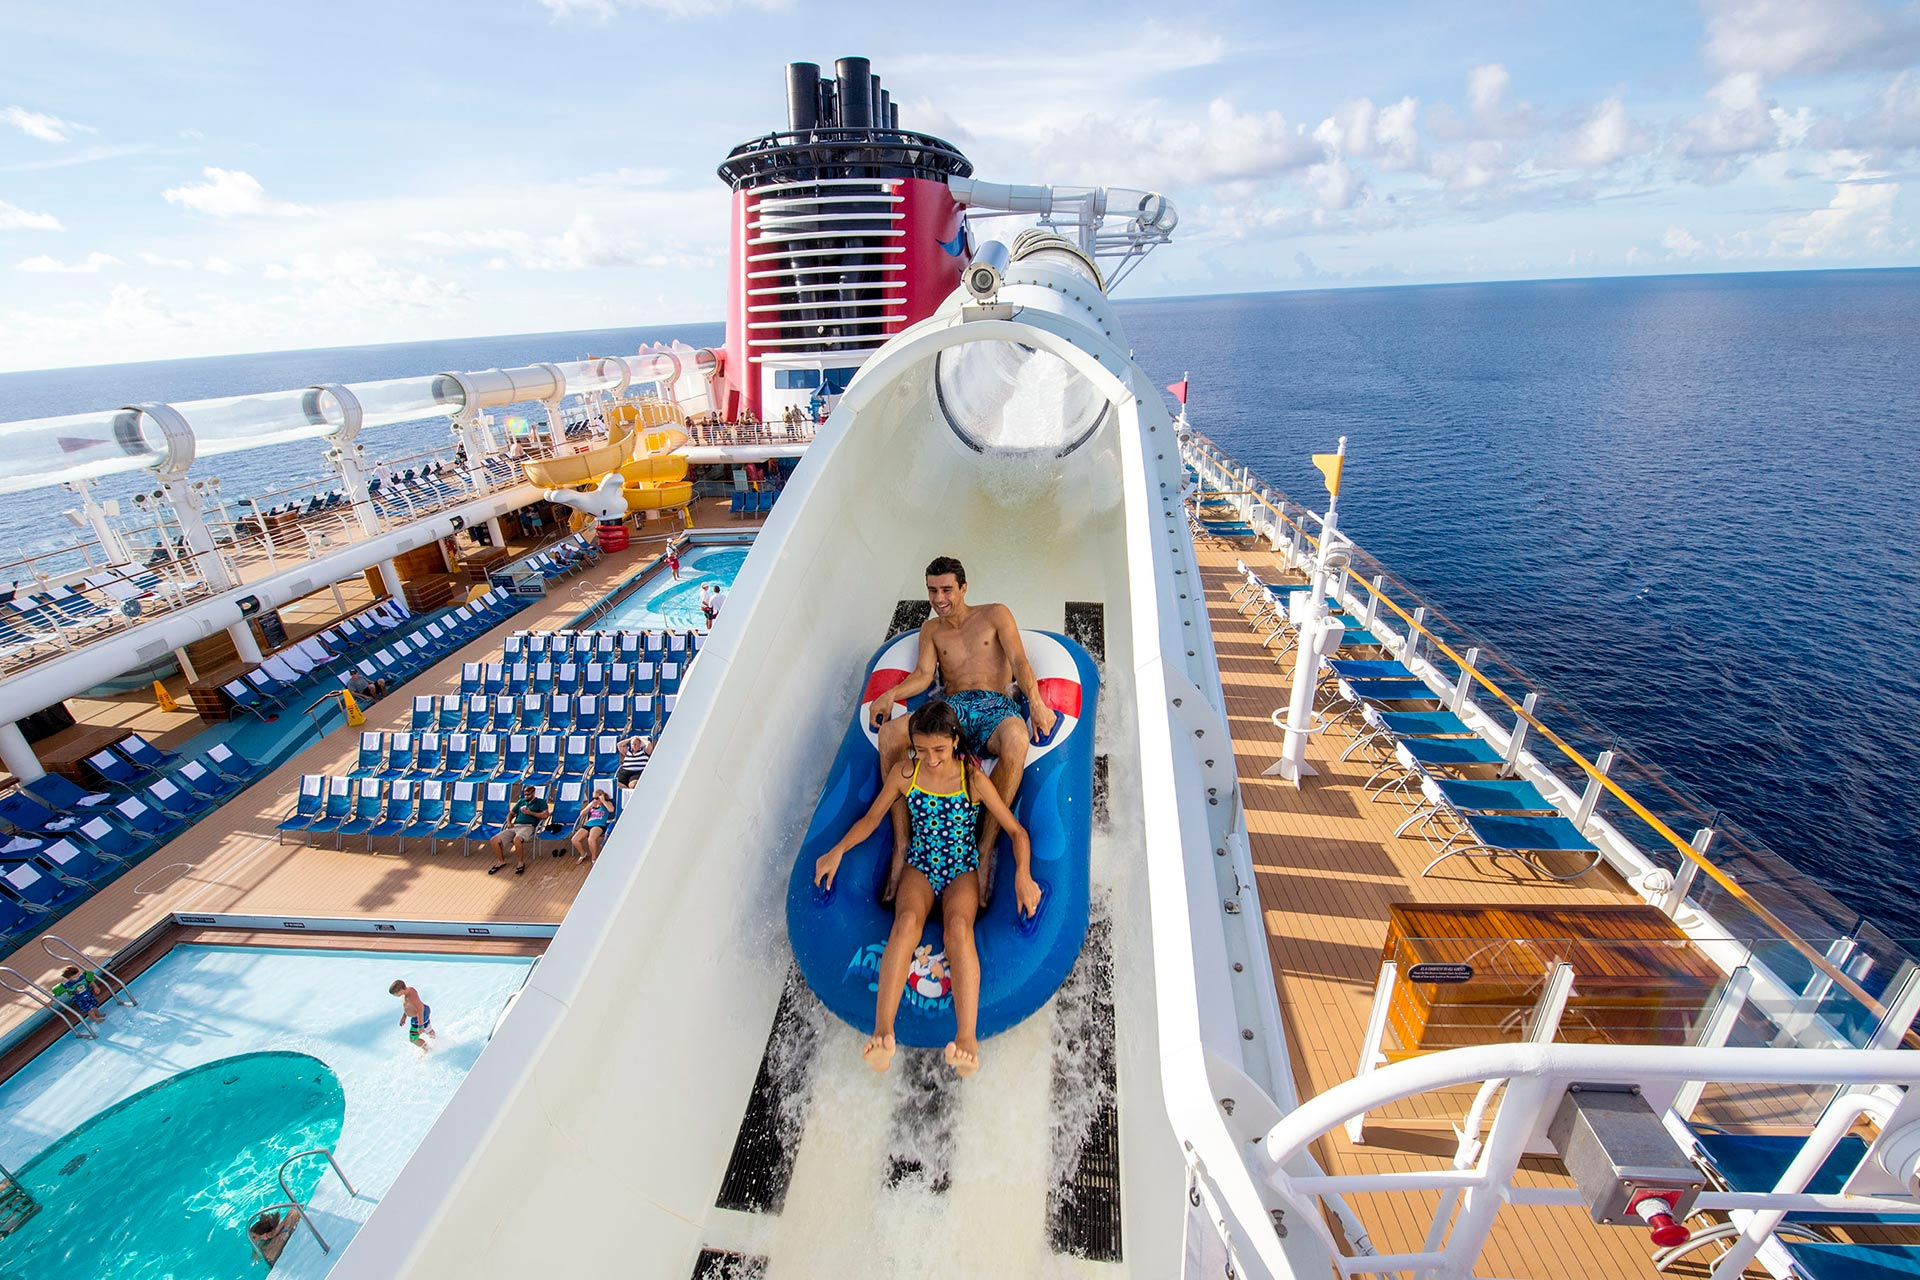 AquaDuck on Disney Cruise Line's Dream and Fantasy